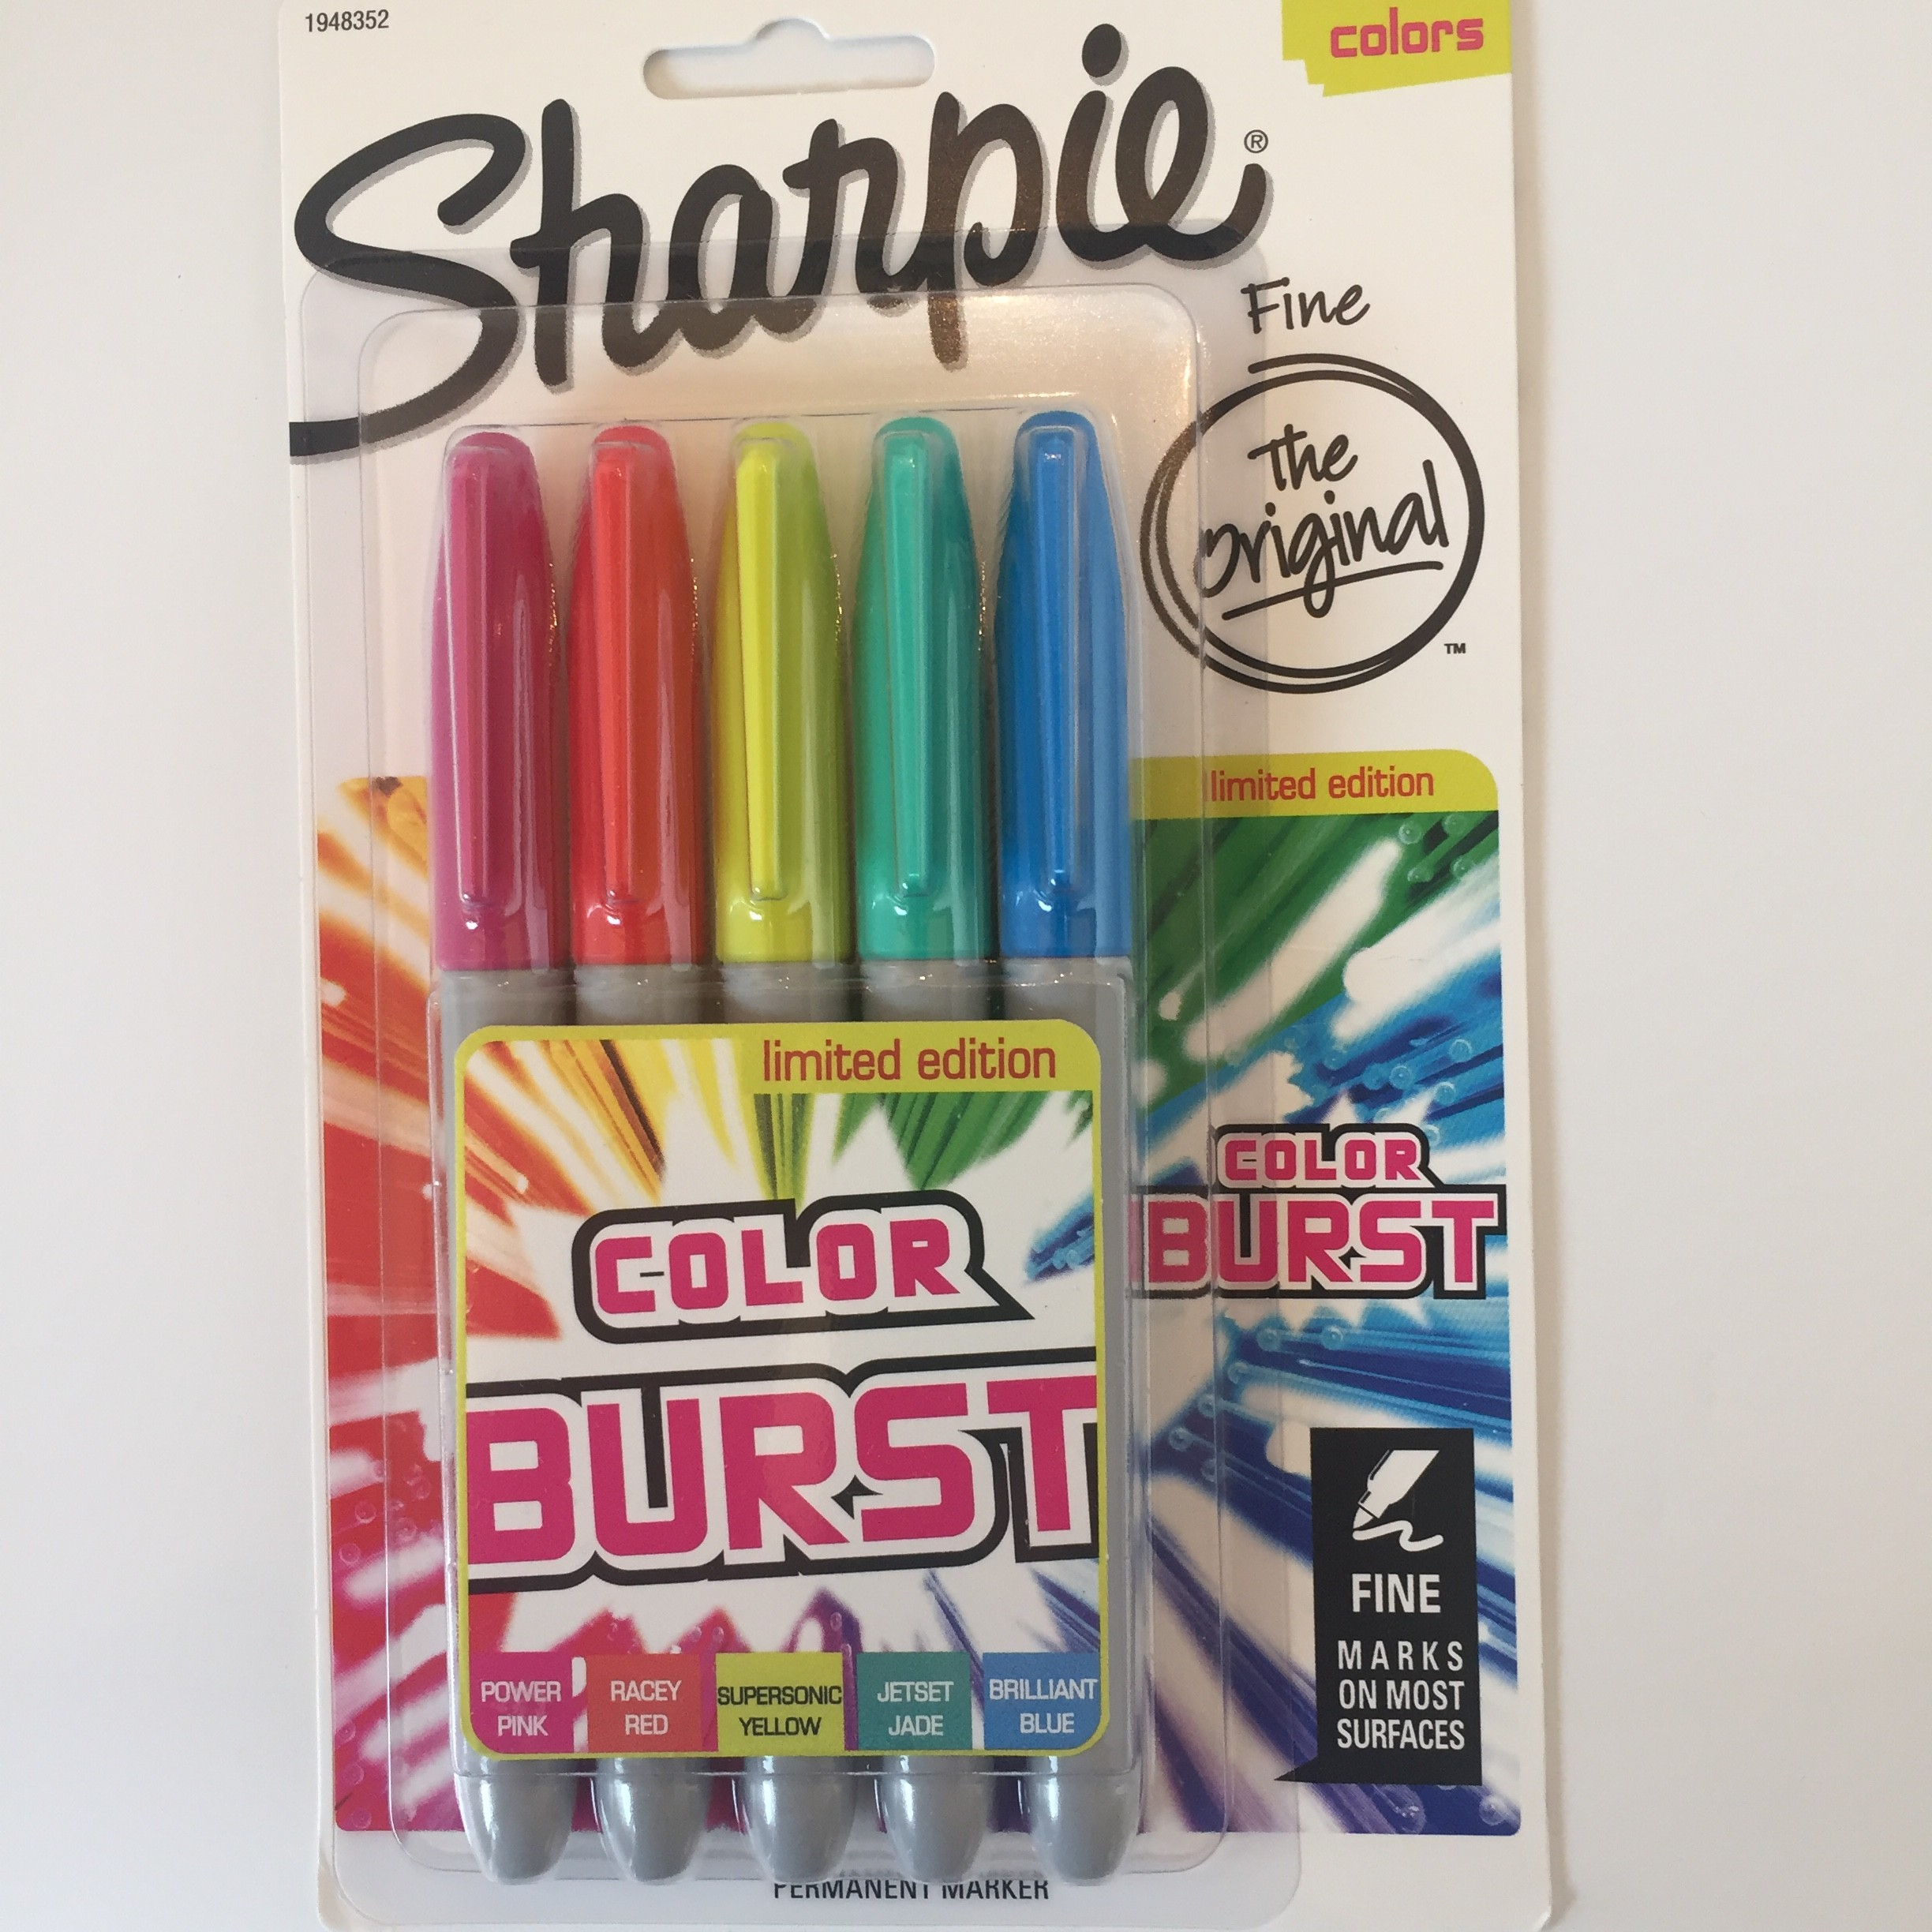 New Sharpie Color Burst Markers Review 2 Old 2 Color